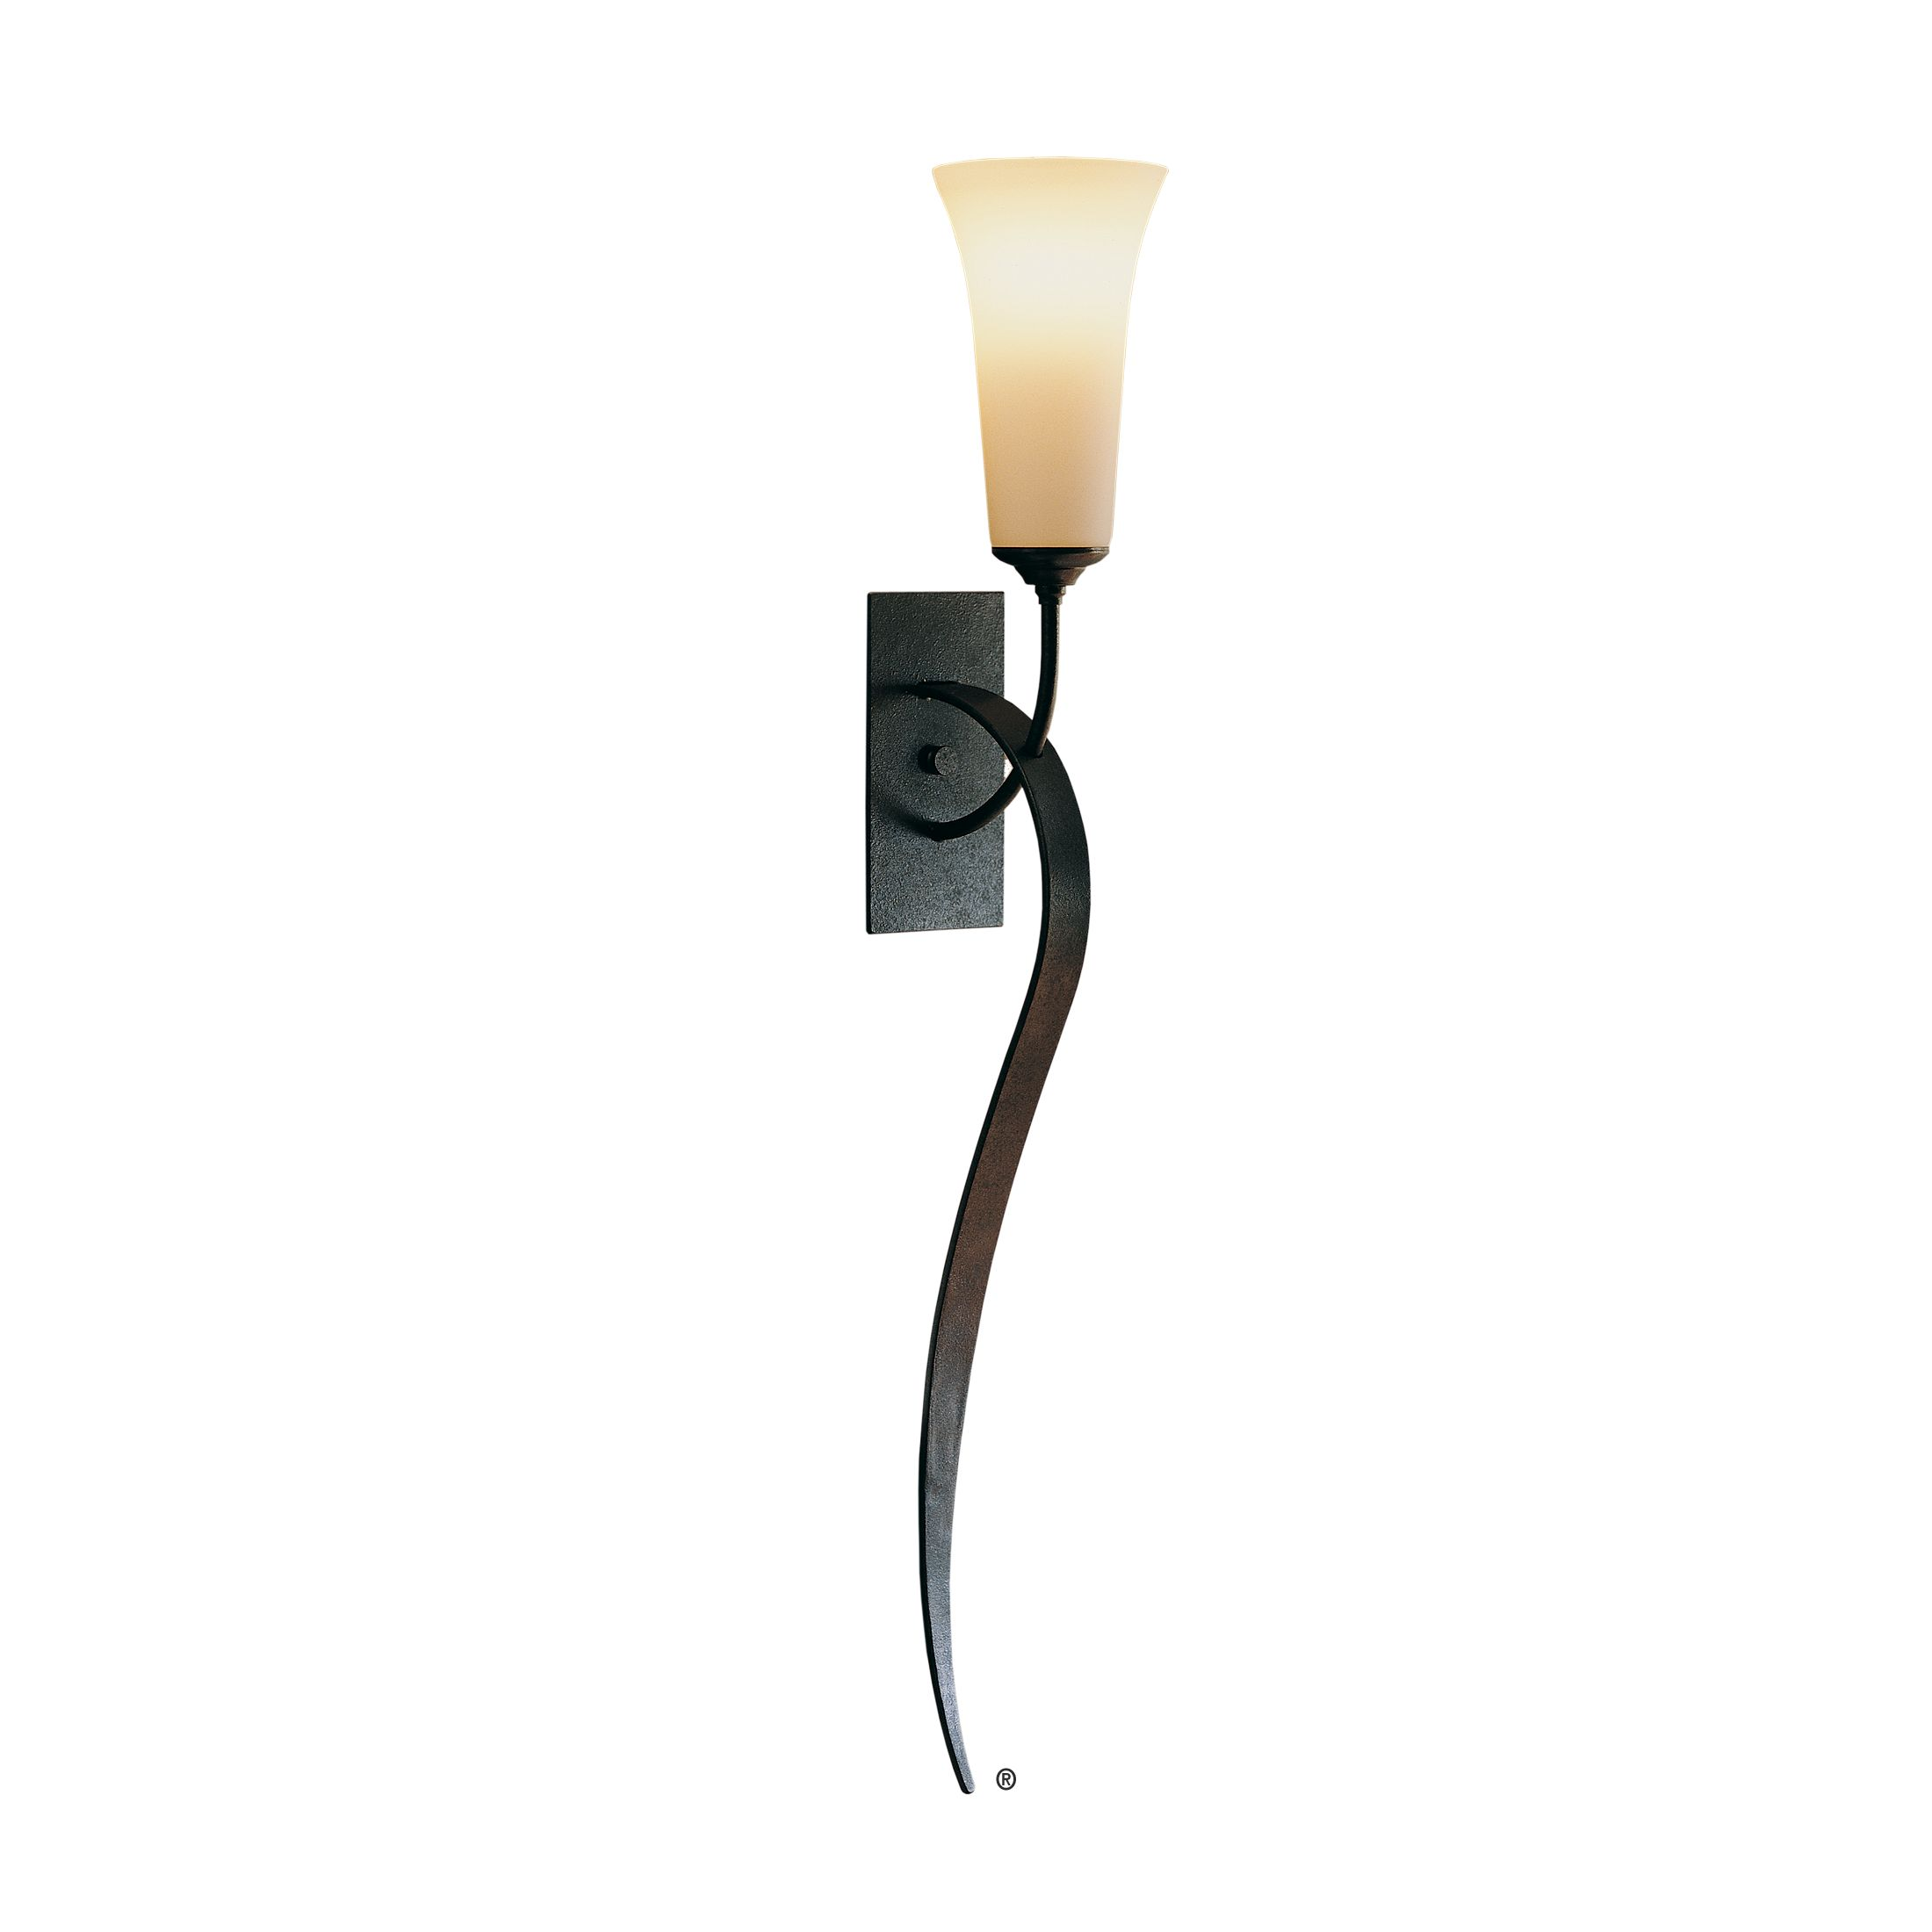 Thumbnail for Sweeping Taper Sconce